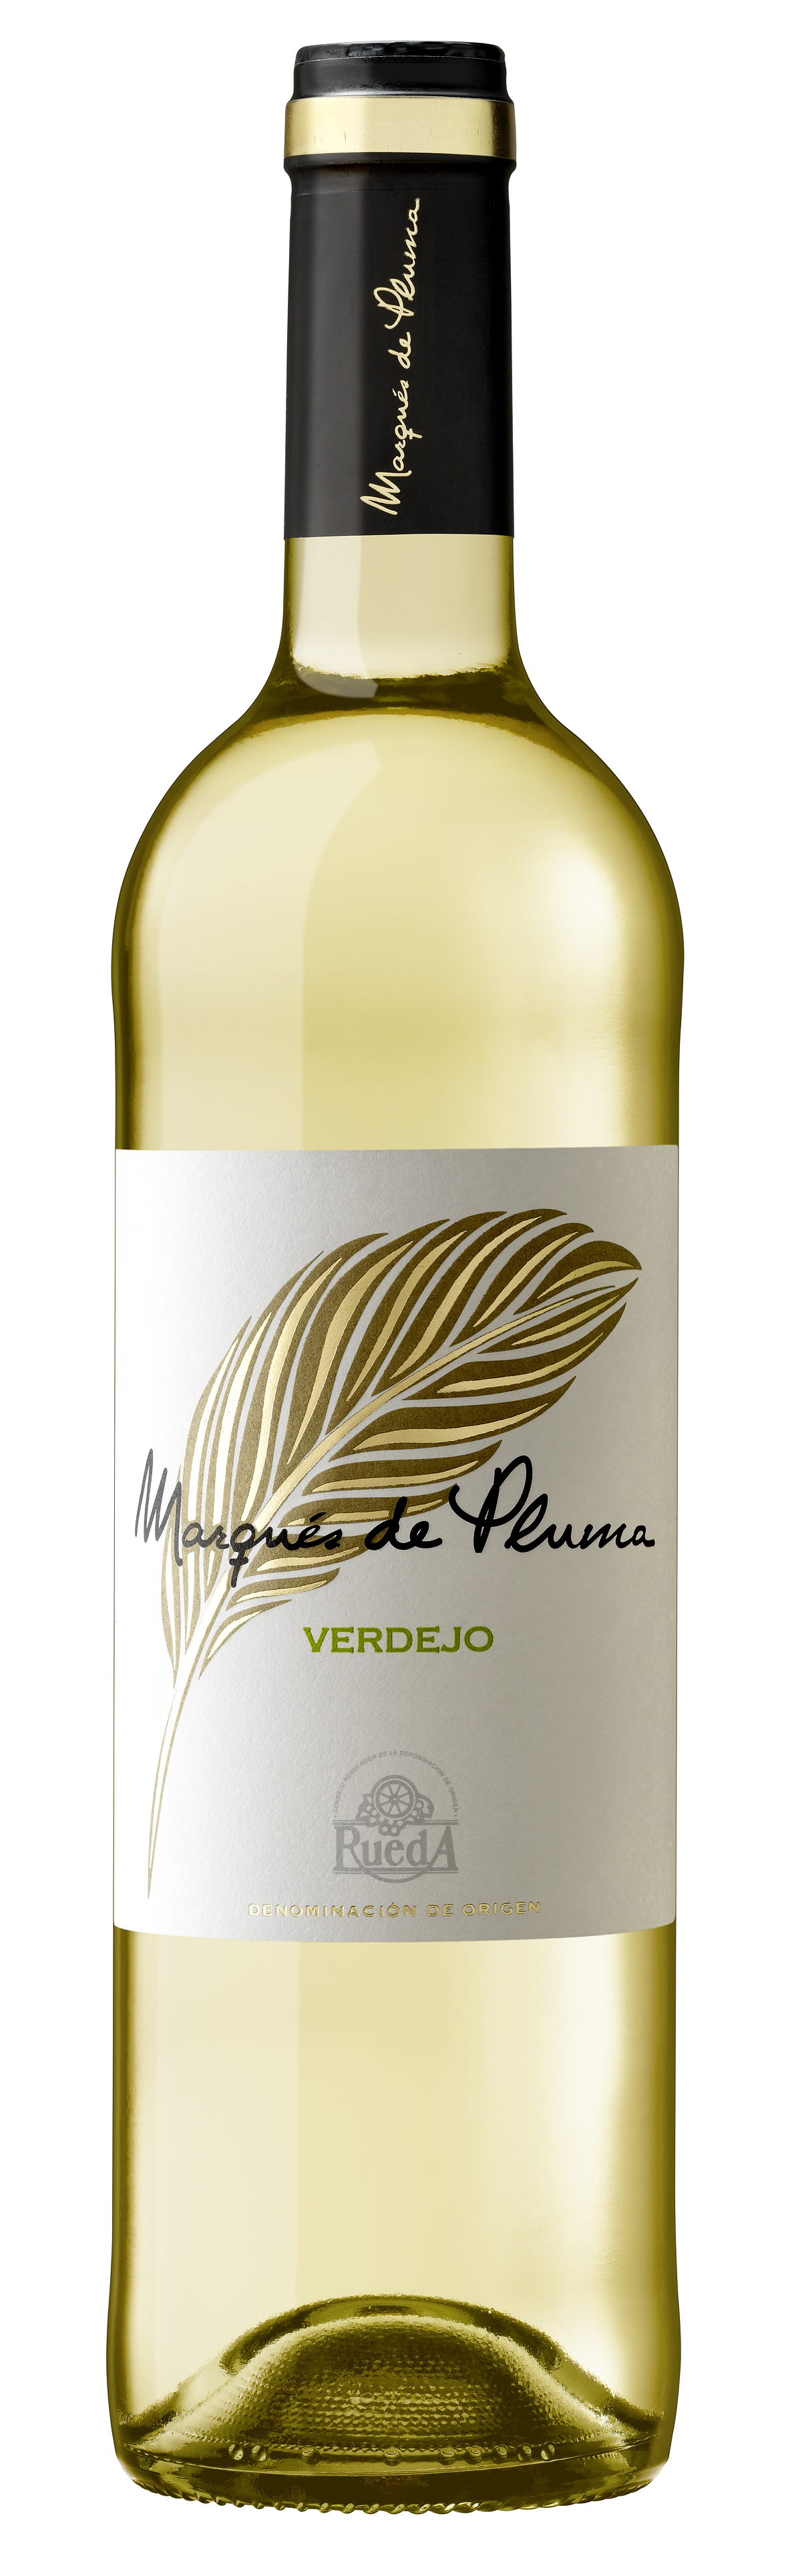 Marques de Pluma Verdejo Rueda DO 2015